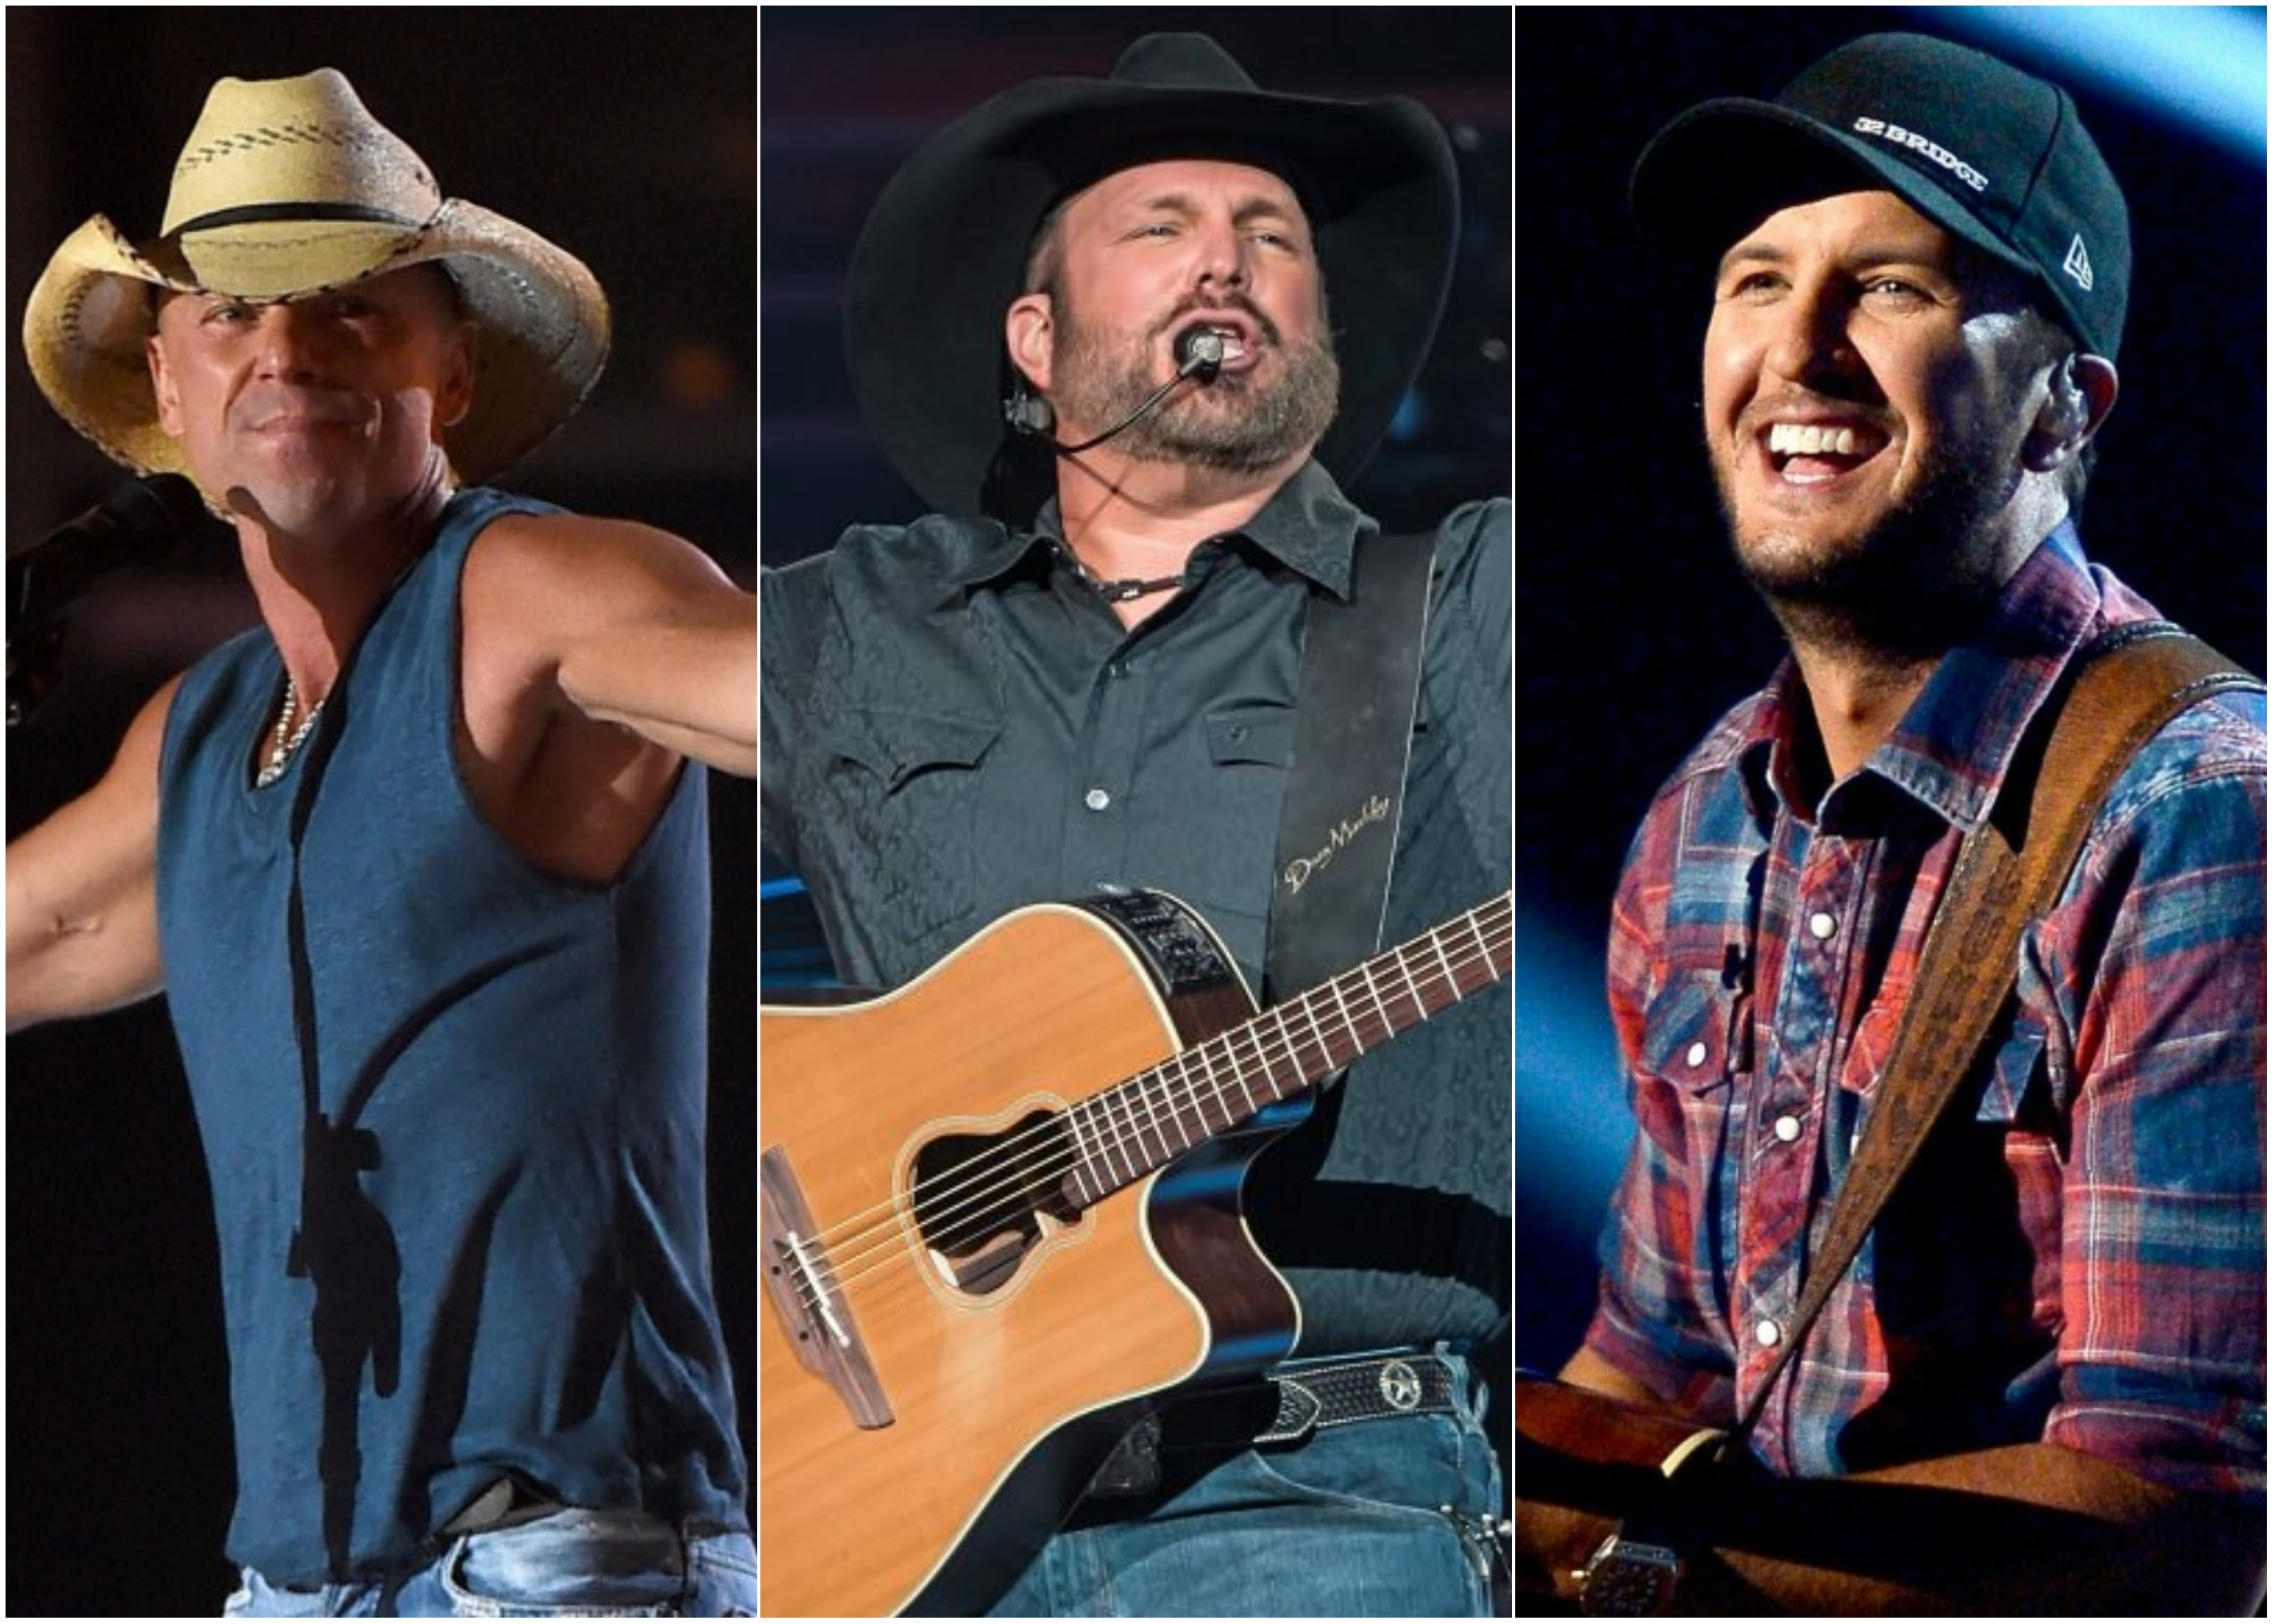 Forbes Releases List of World's Highest-Paid Country Music Stars